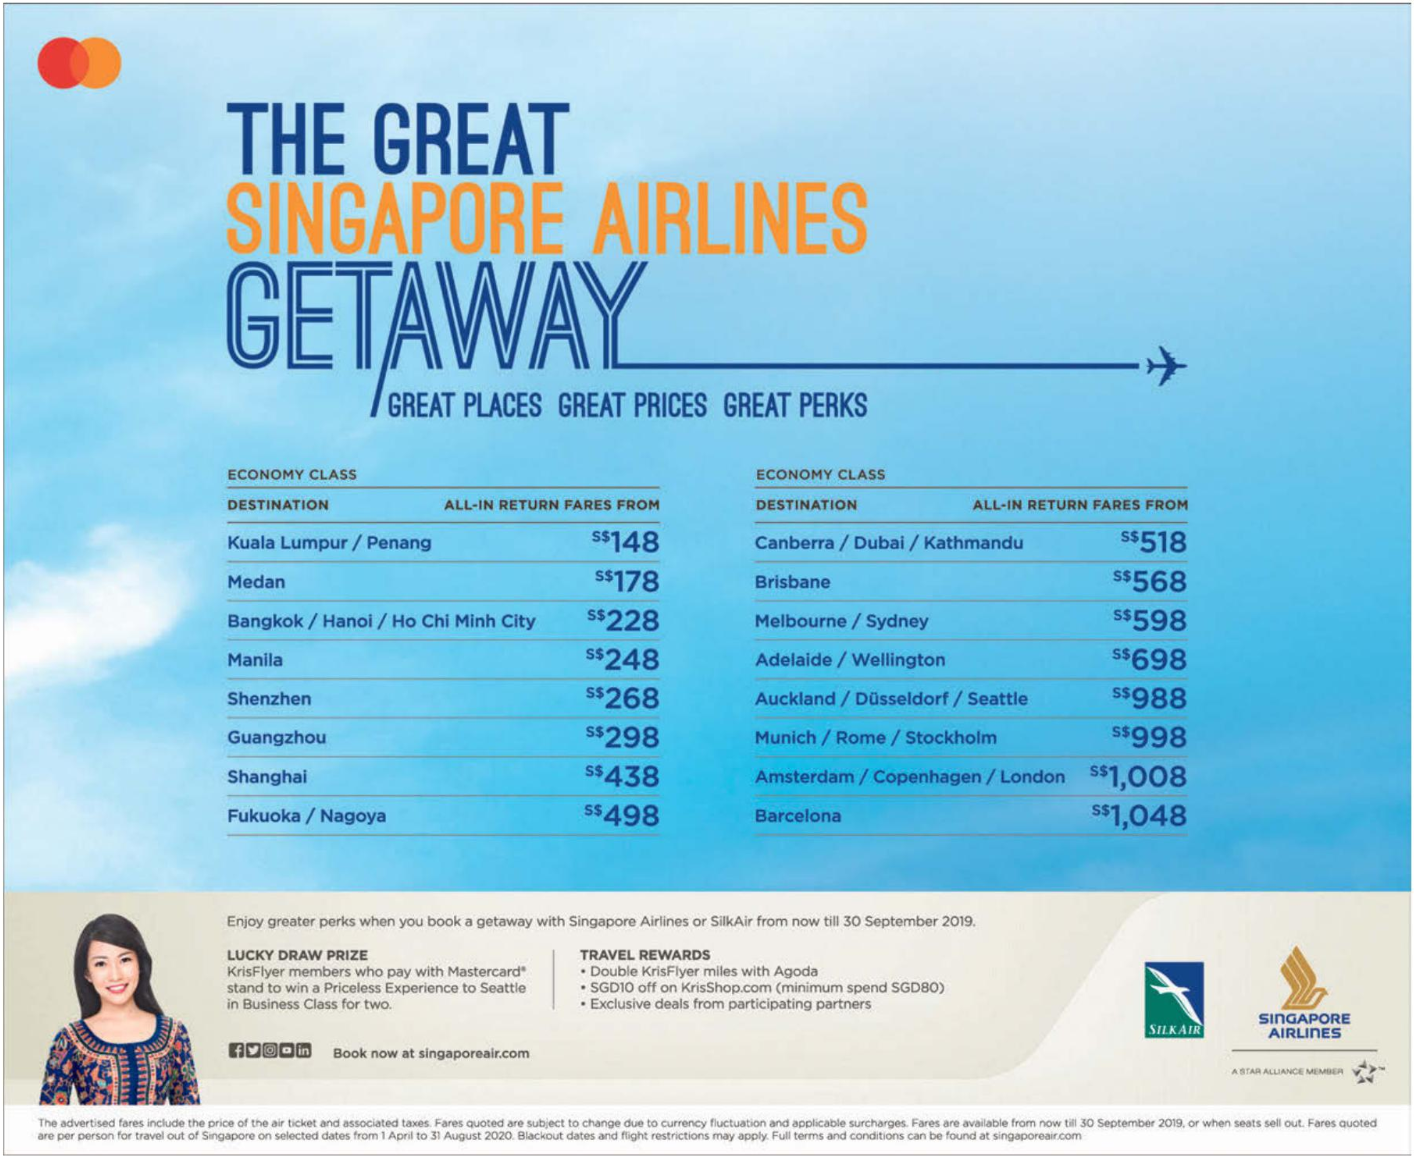 Singapore Airlines launched 'Great Getaway Sale' offering discounted sale fares to over 70 destinations. Book from now till 30 Sep 19